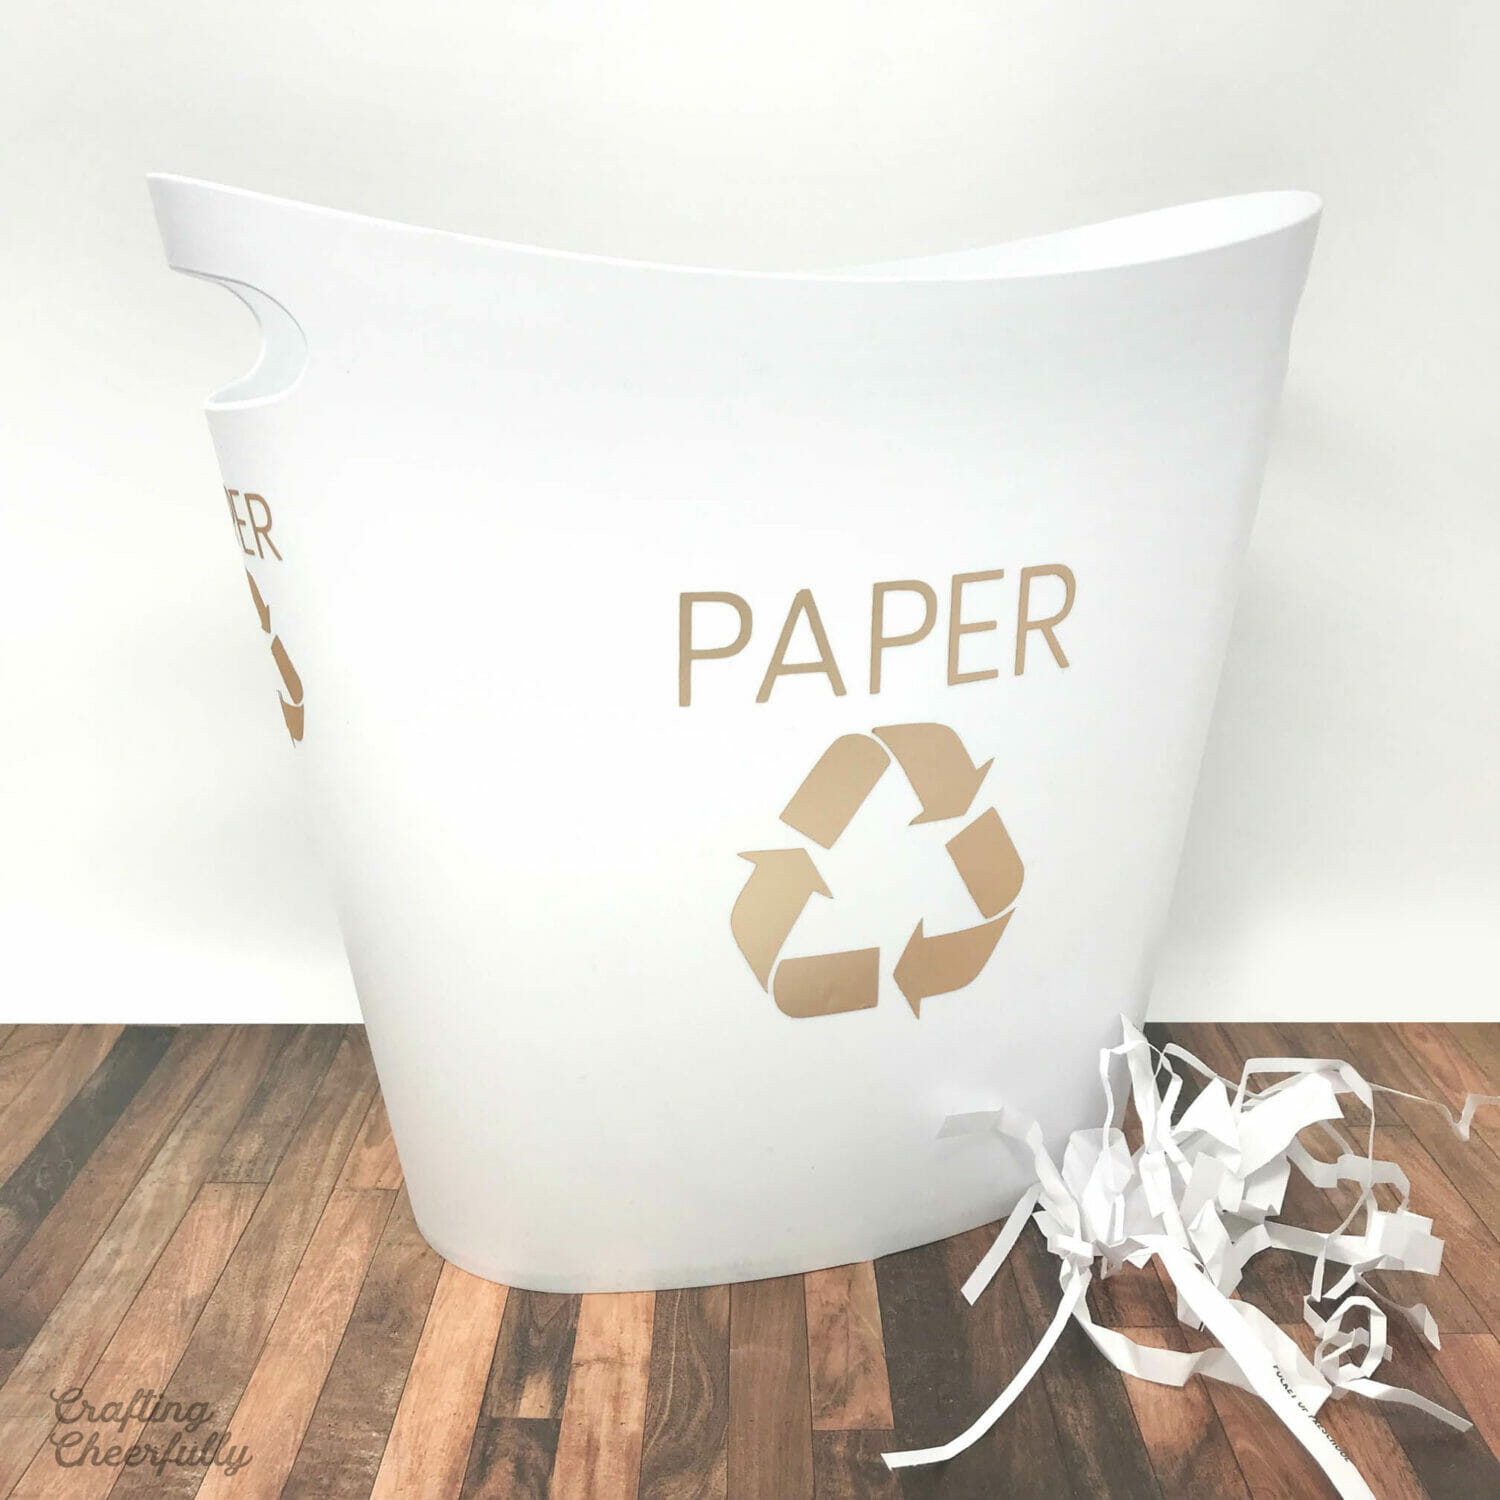 DIY Recycle Bin with Adhesive Foil